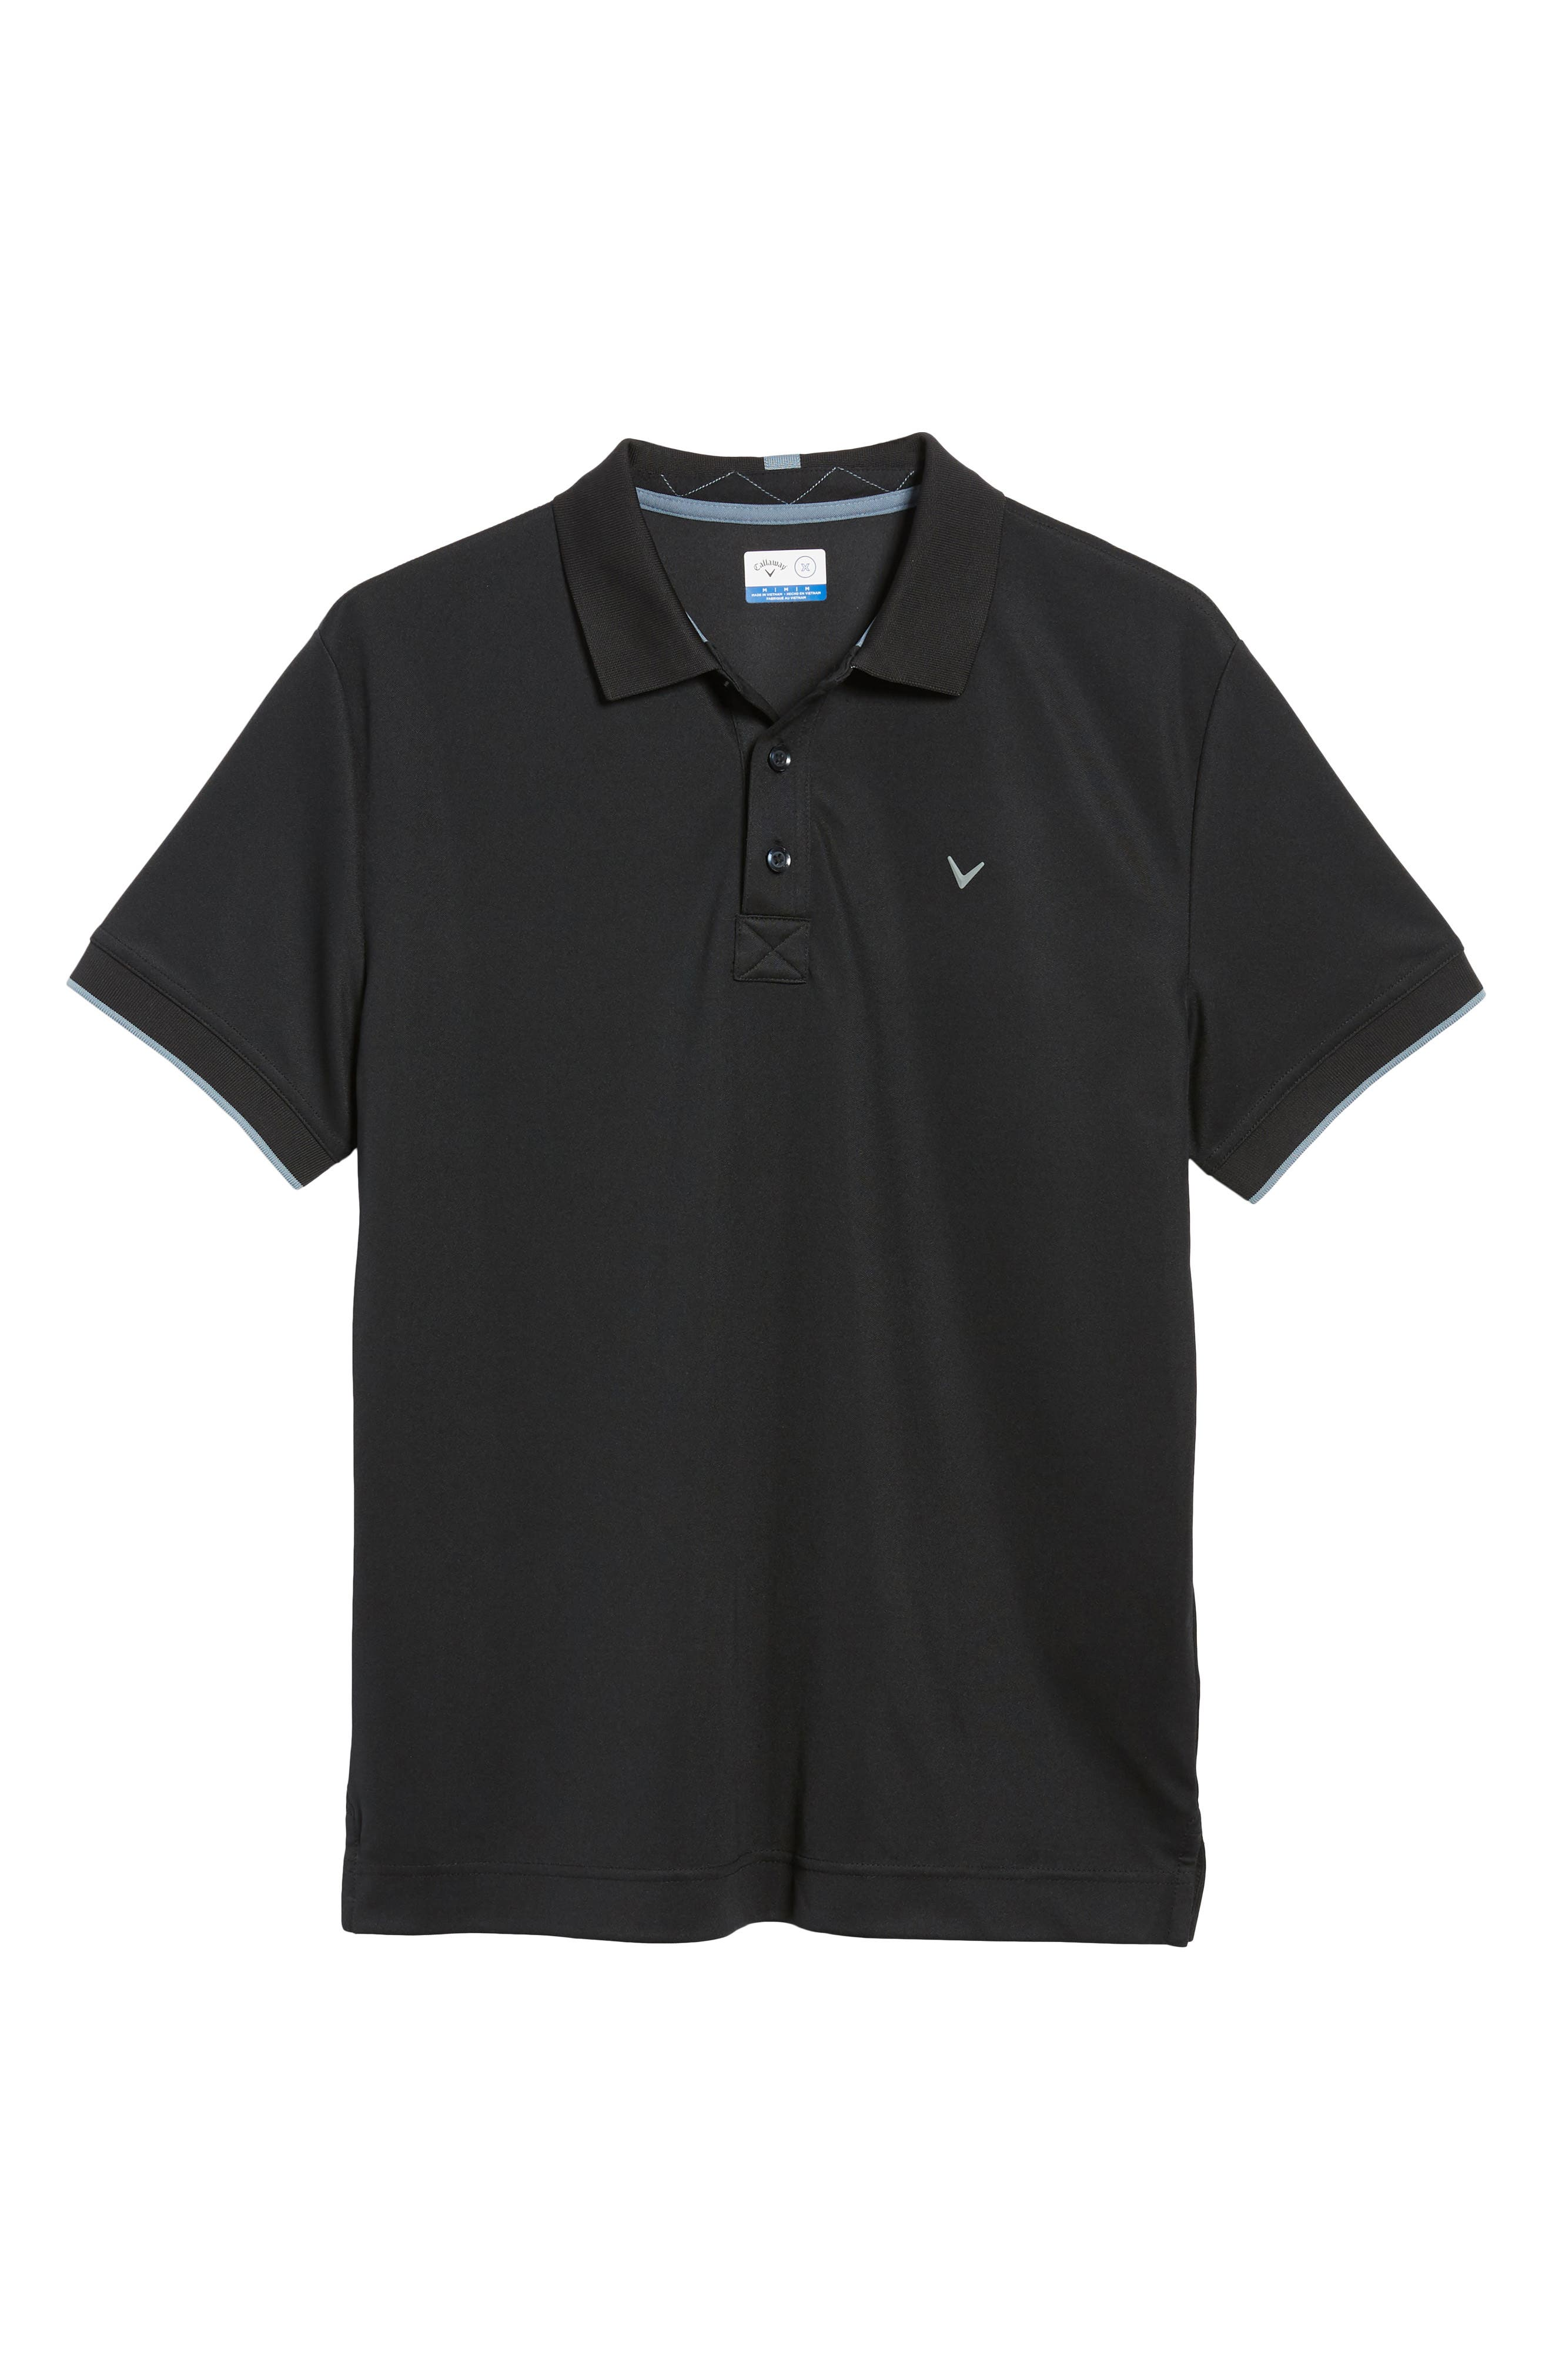 CALLAWAY X,                             Slim Fit Stretch Polo Shirt,                             Alternate thumbnail 2, color,                             002